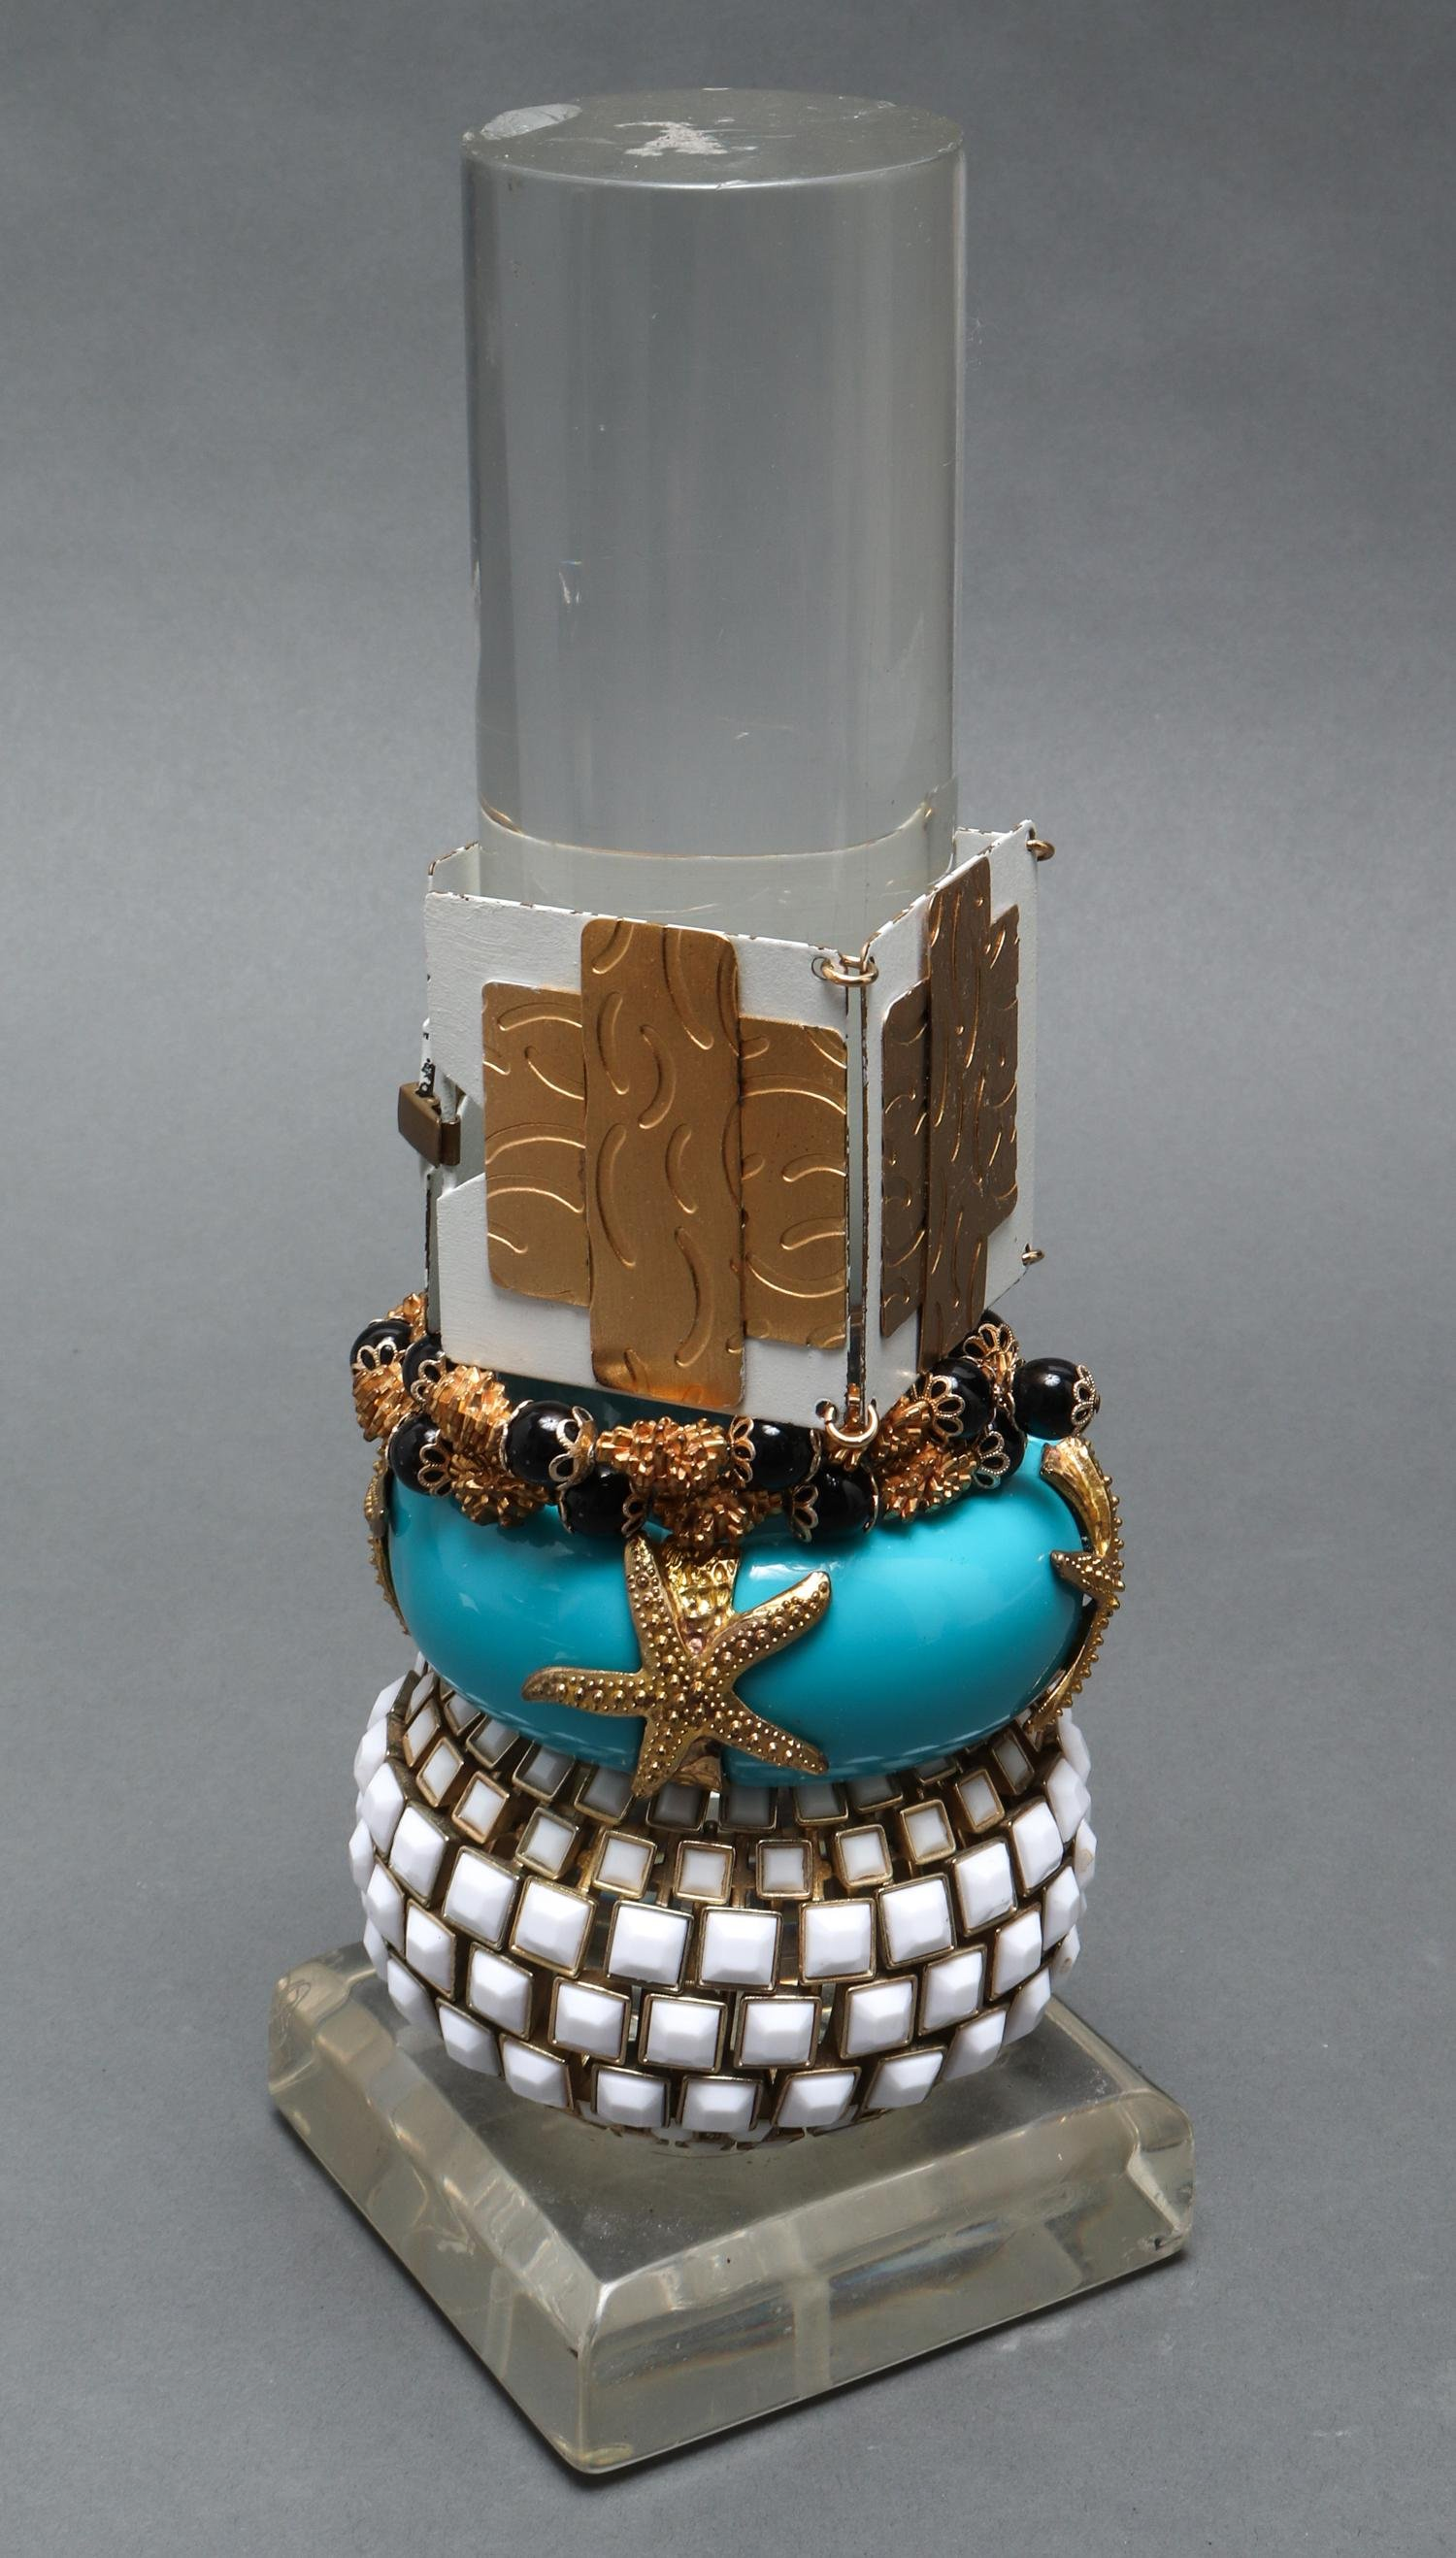 Bracelets w Gold Tone Metal on Lucite Stand, 4